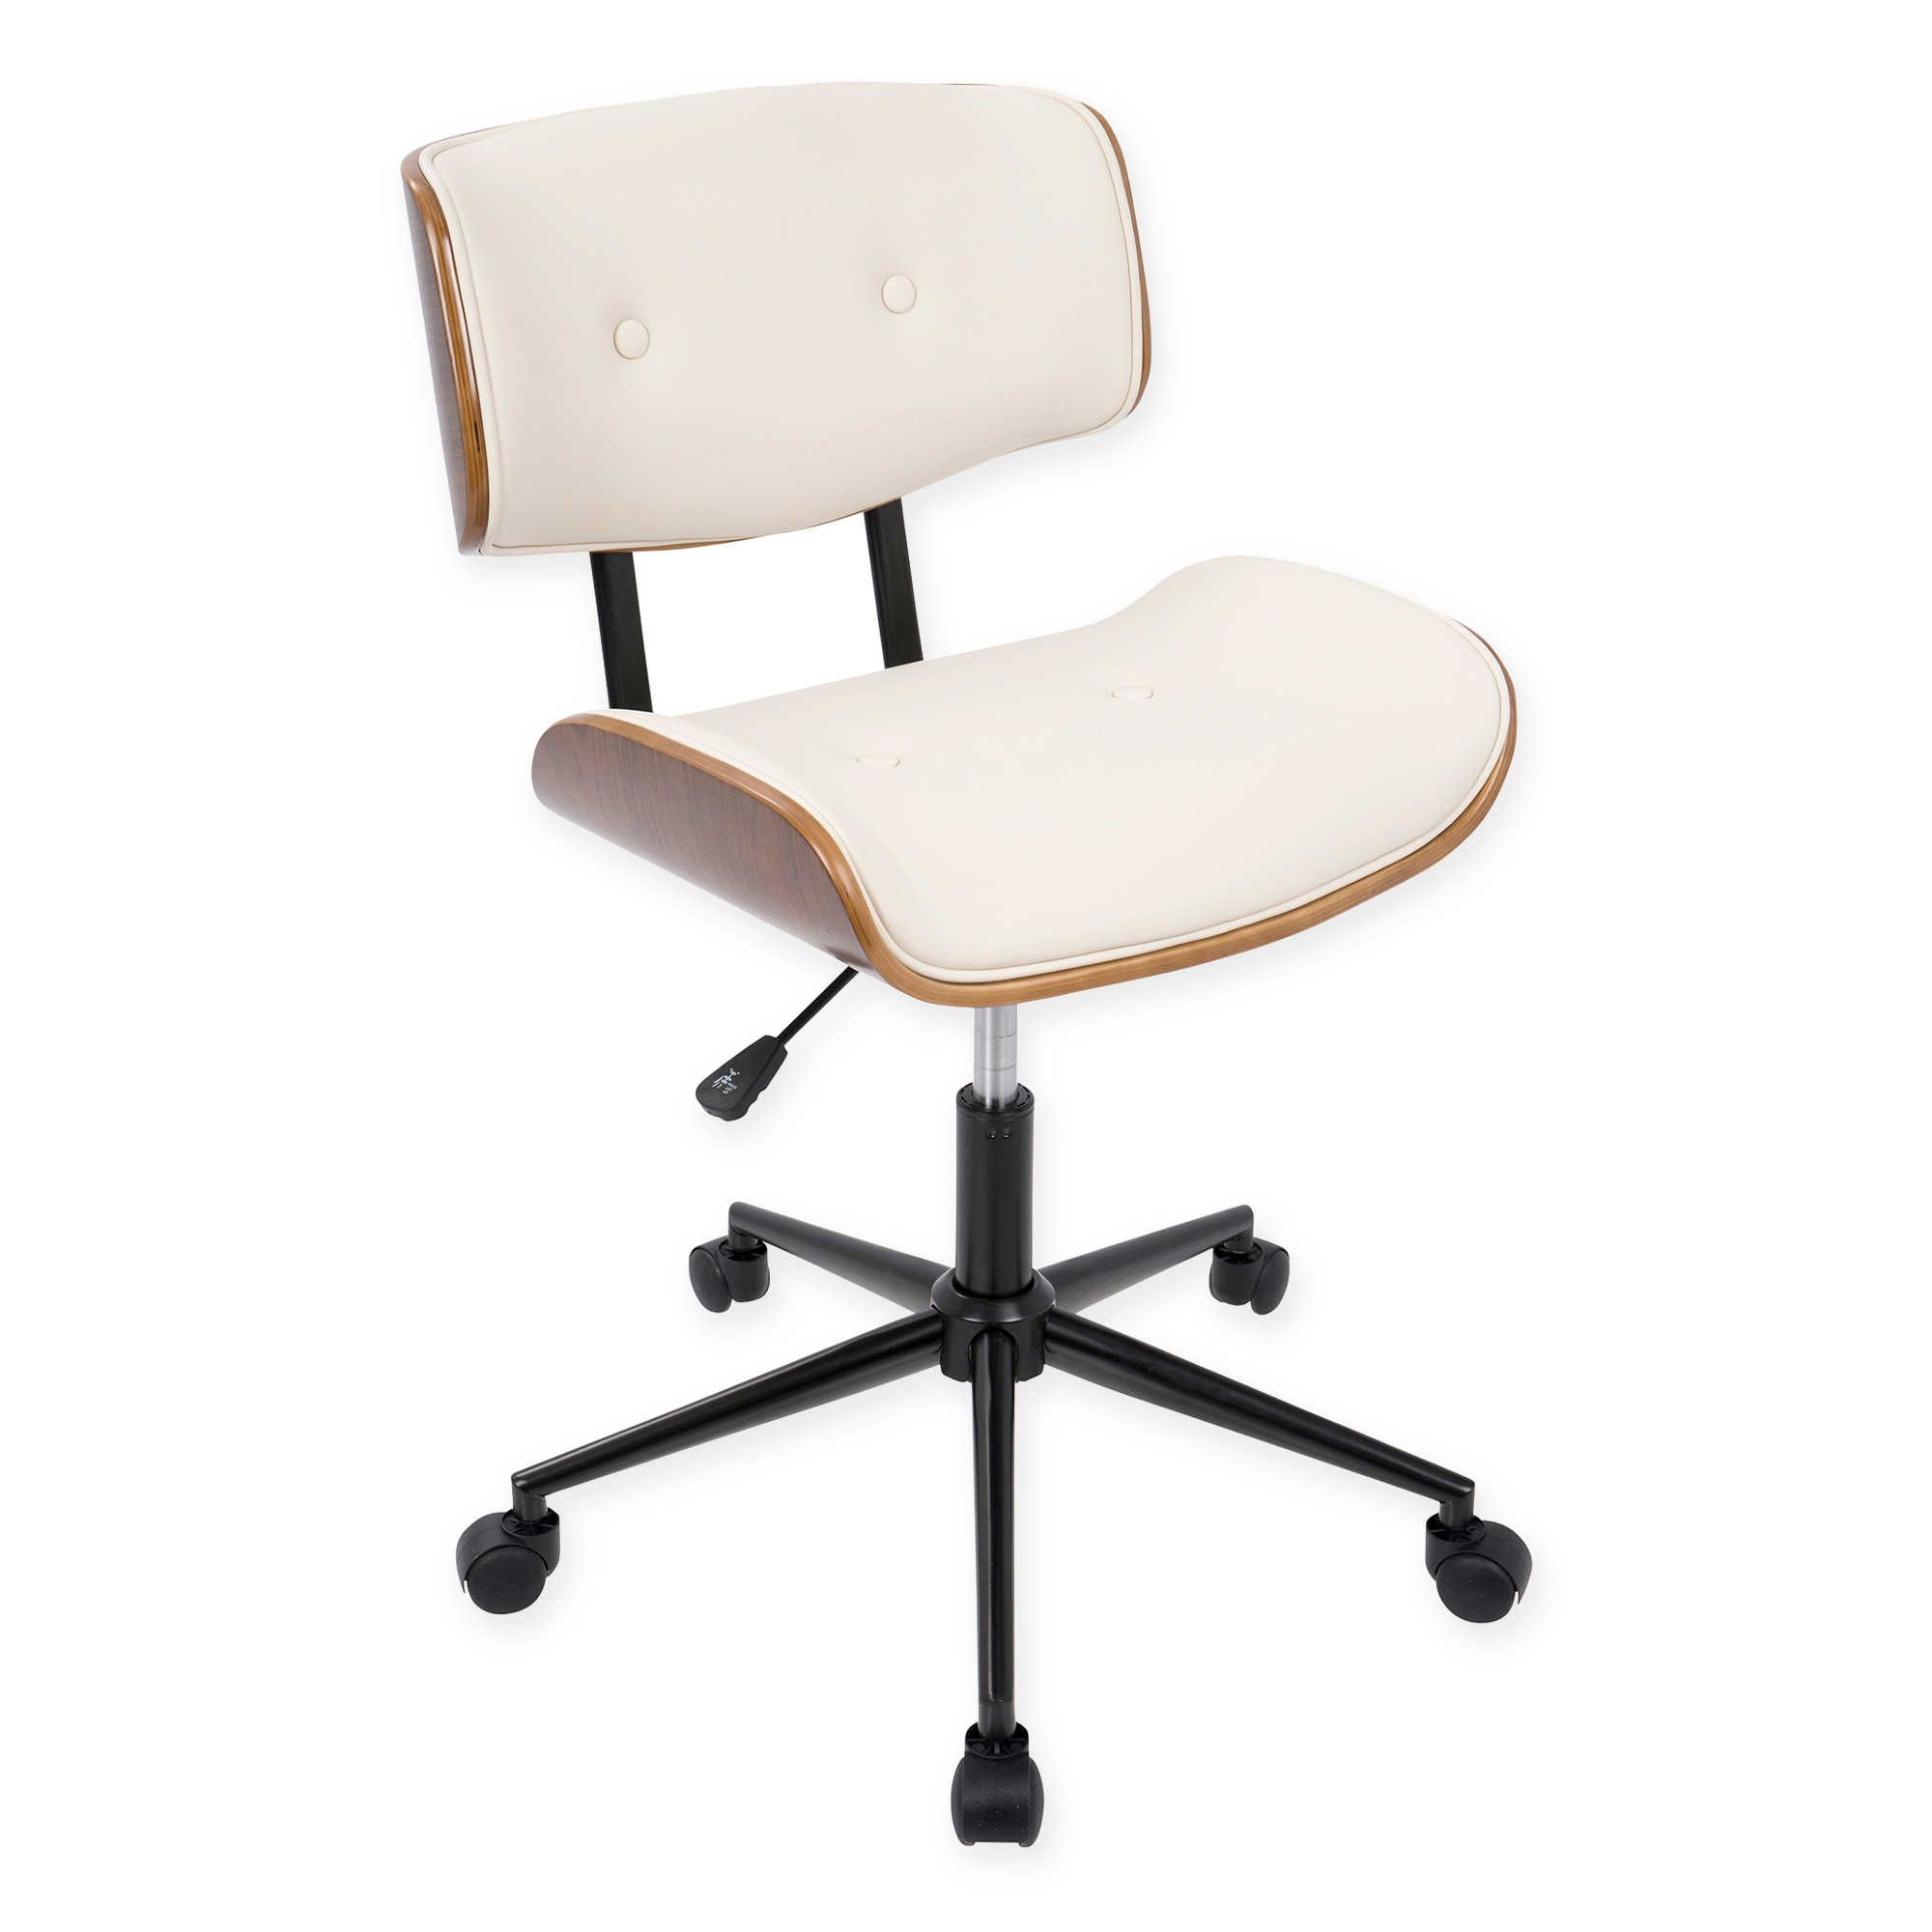 Lumisource Lombardi Mid Century Modern Office Chair Home Office